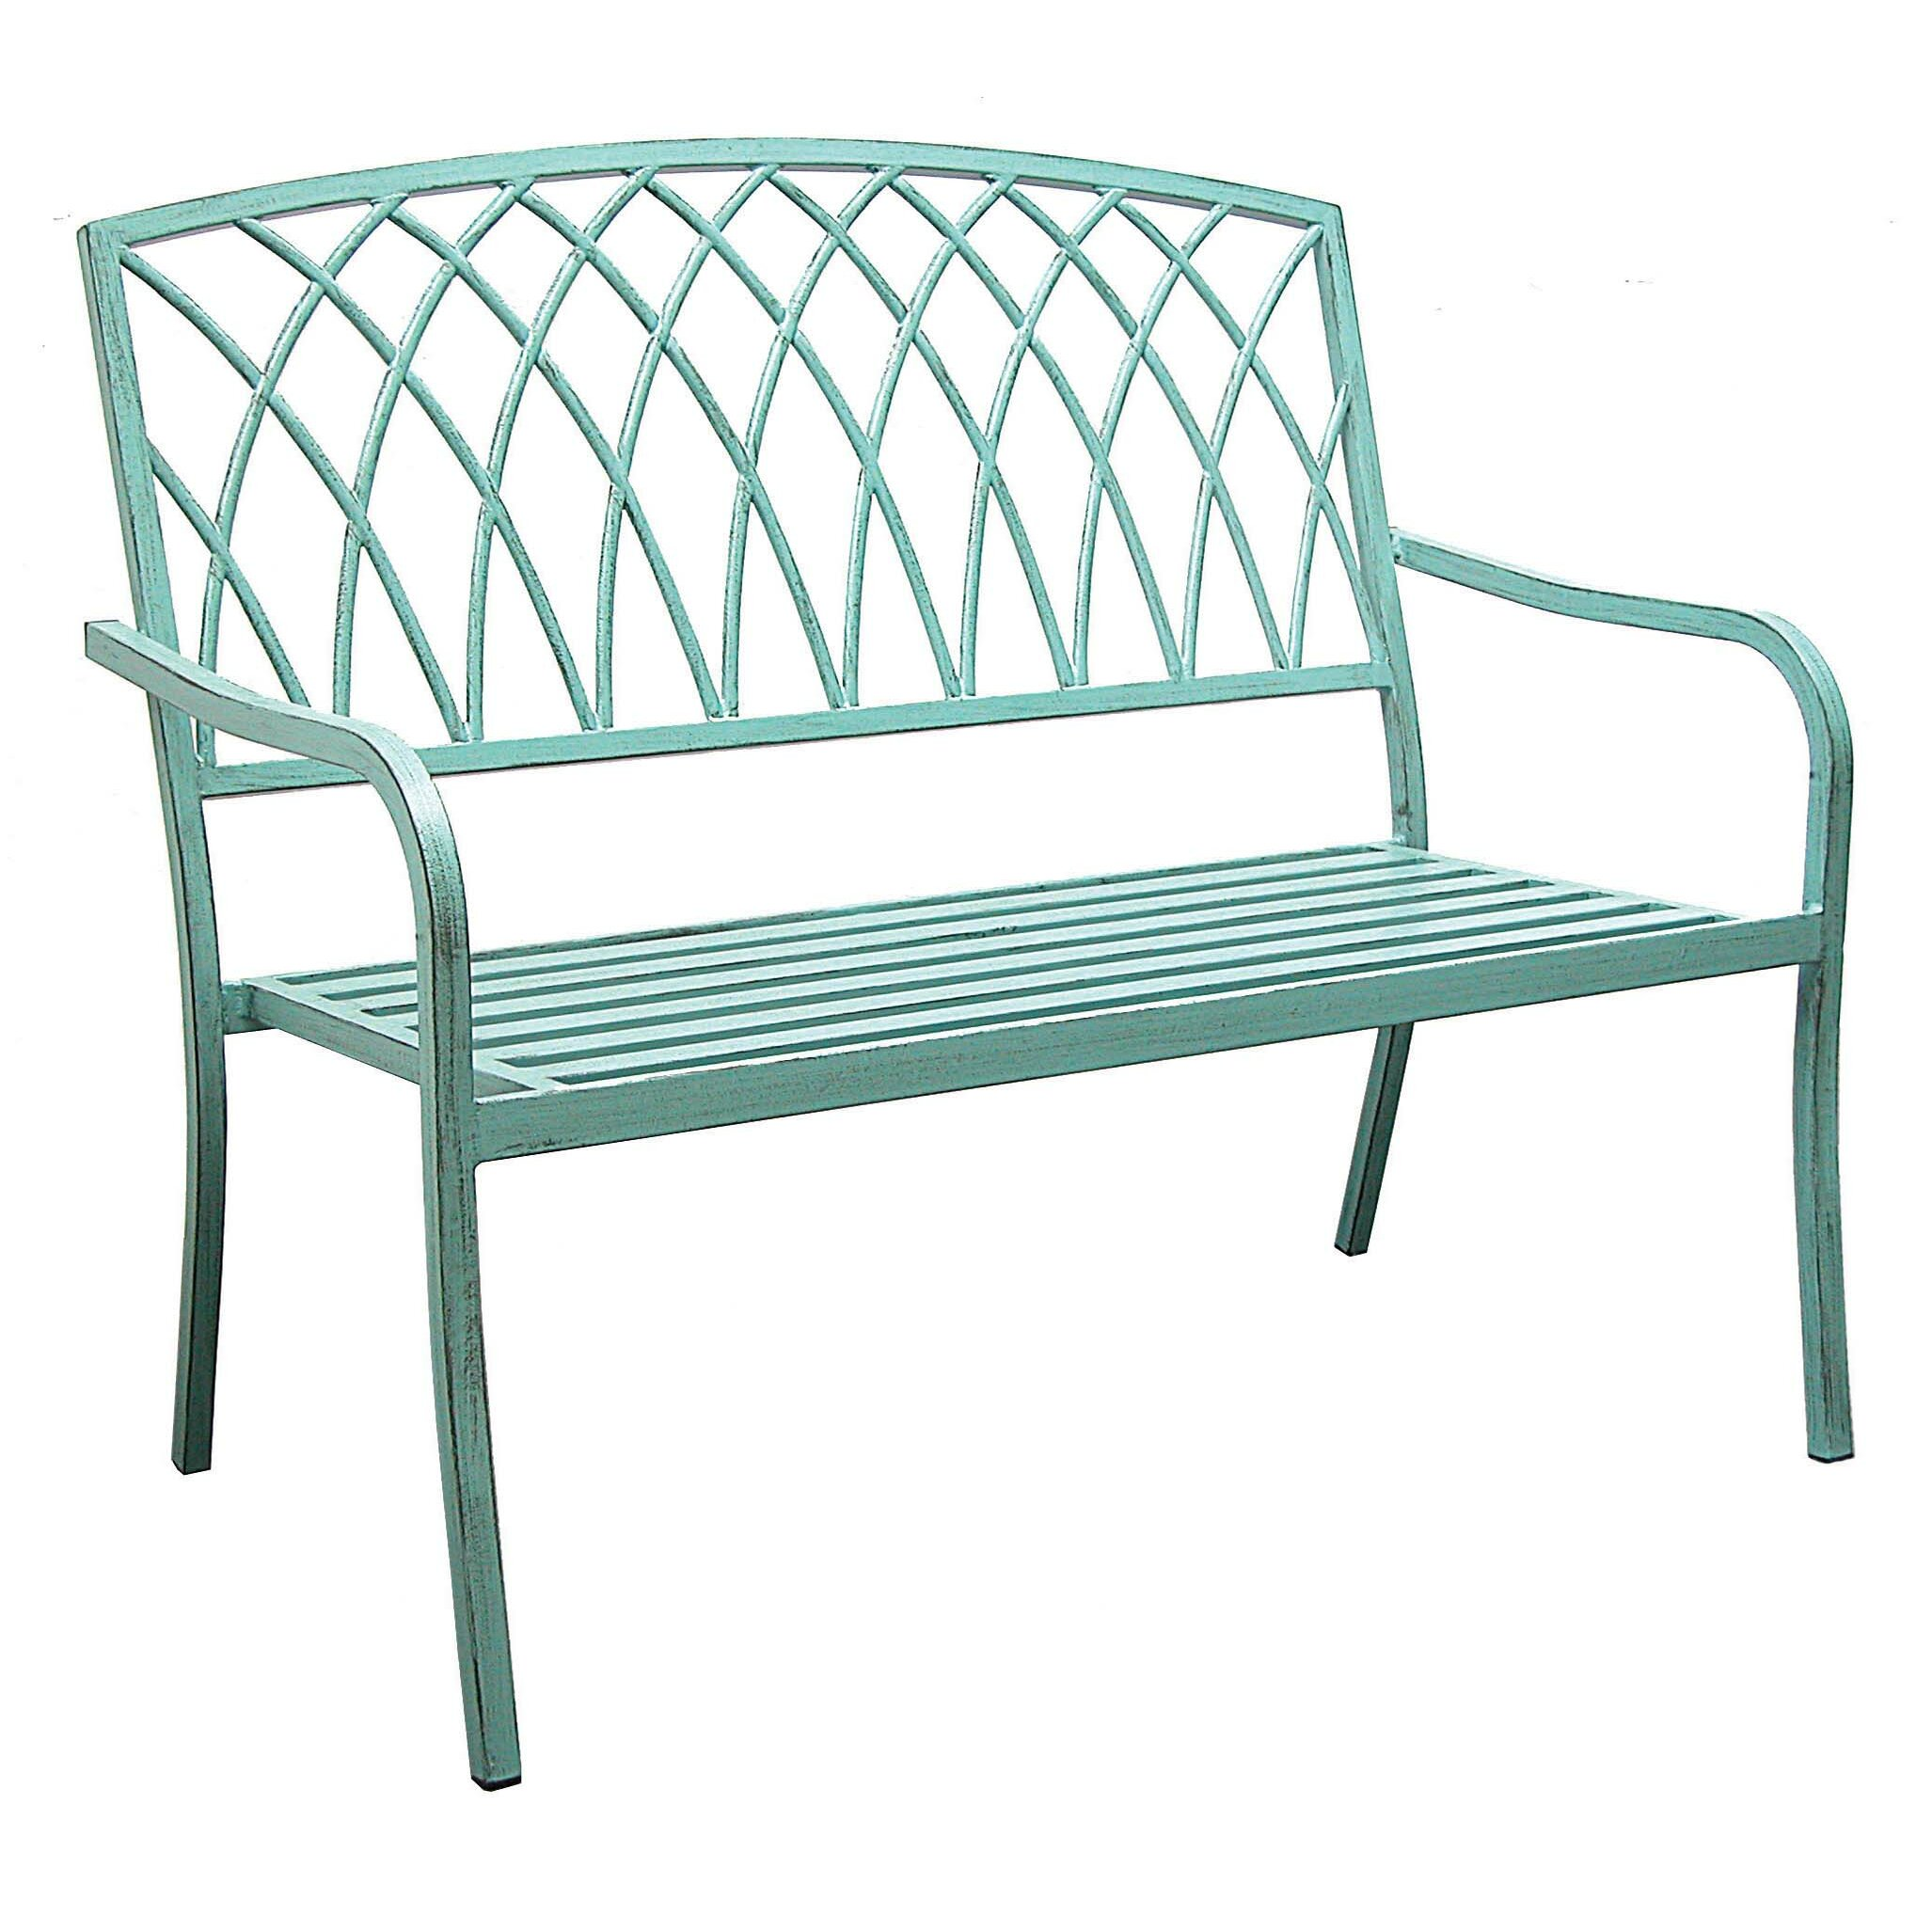 Hearth Bench: Innova Hearth And Home Lancaster Steel Park Bench